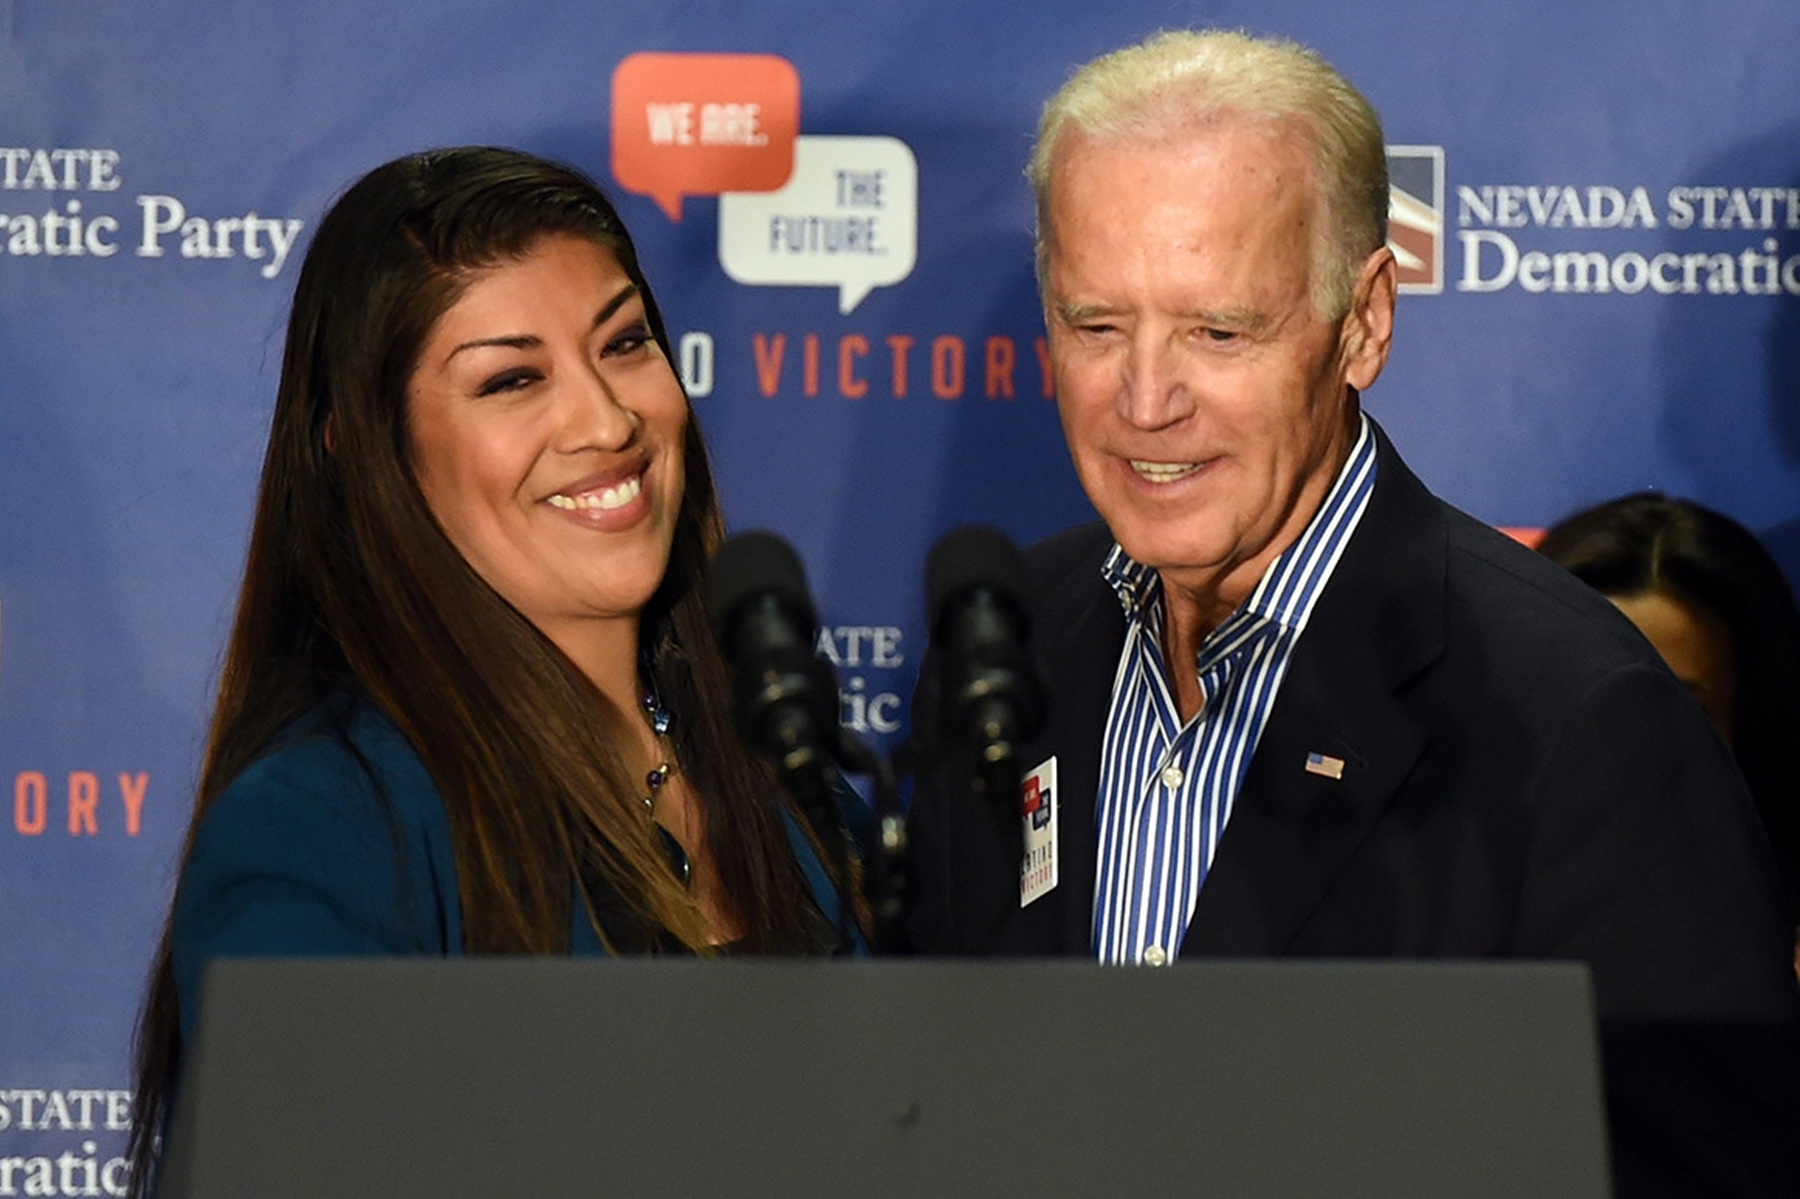 """lucy-flores-wants-democrats-to-not-nominate-joe-biden-for-president-this-might-be-the-reason-for-the-inappropriate-kiss-on-the-head-revelation"""